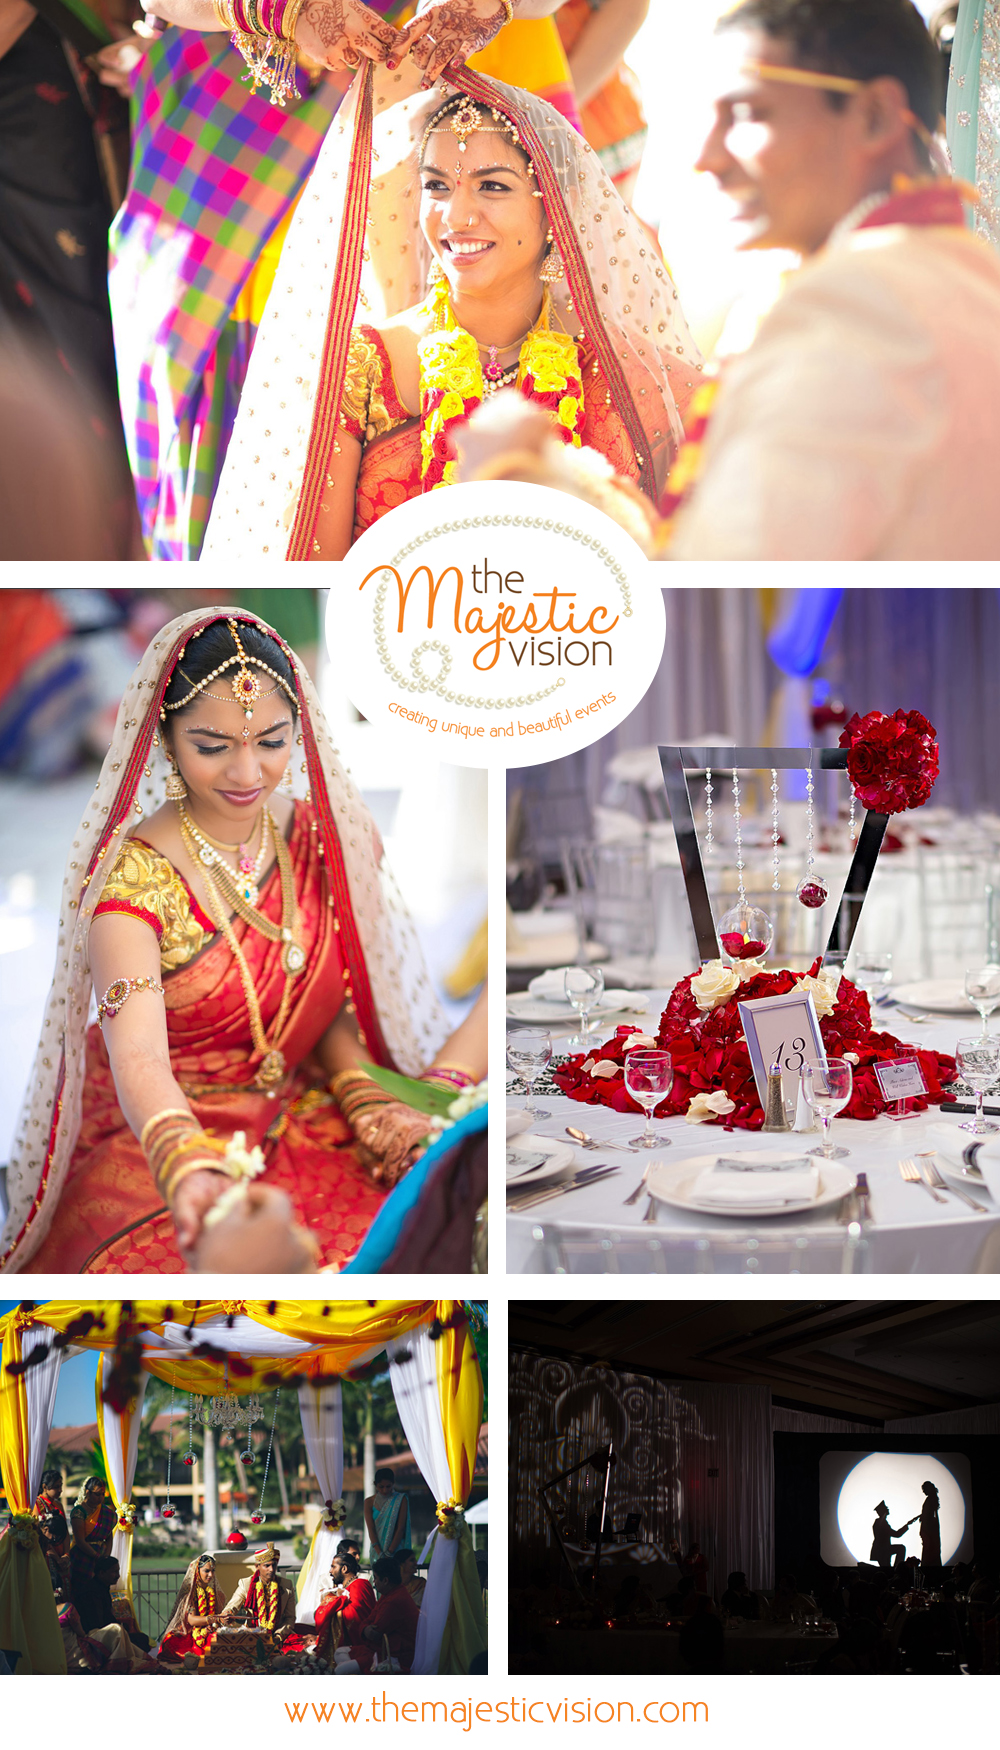 Elegant Indian Wedding | The Majestic Vision Wedding Planning | PGA National in Palm Beach, FL | www.themajesticvision.com | Haring Photography